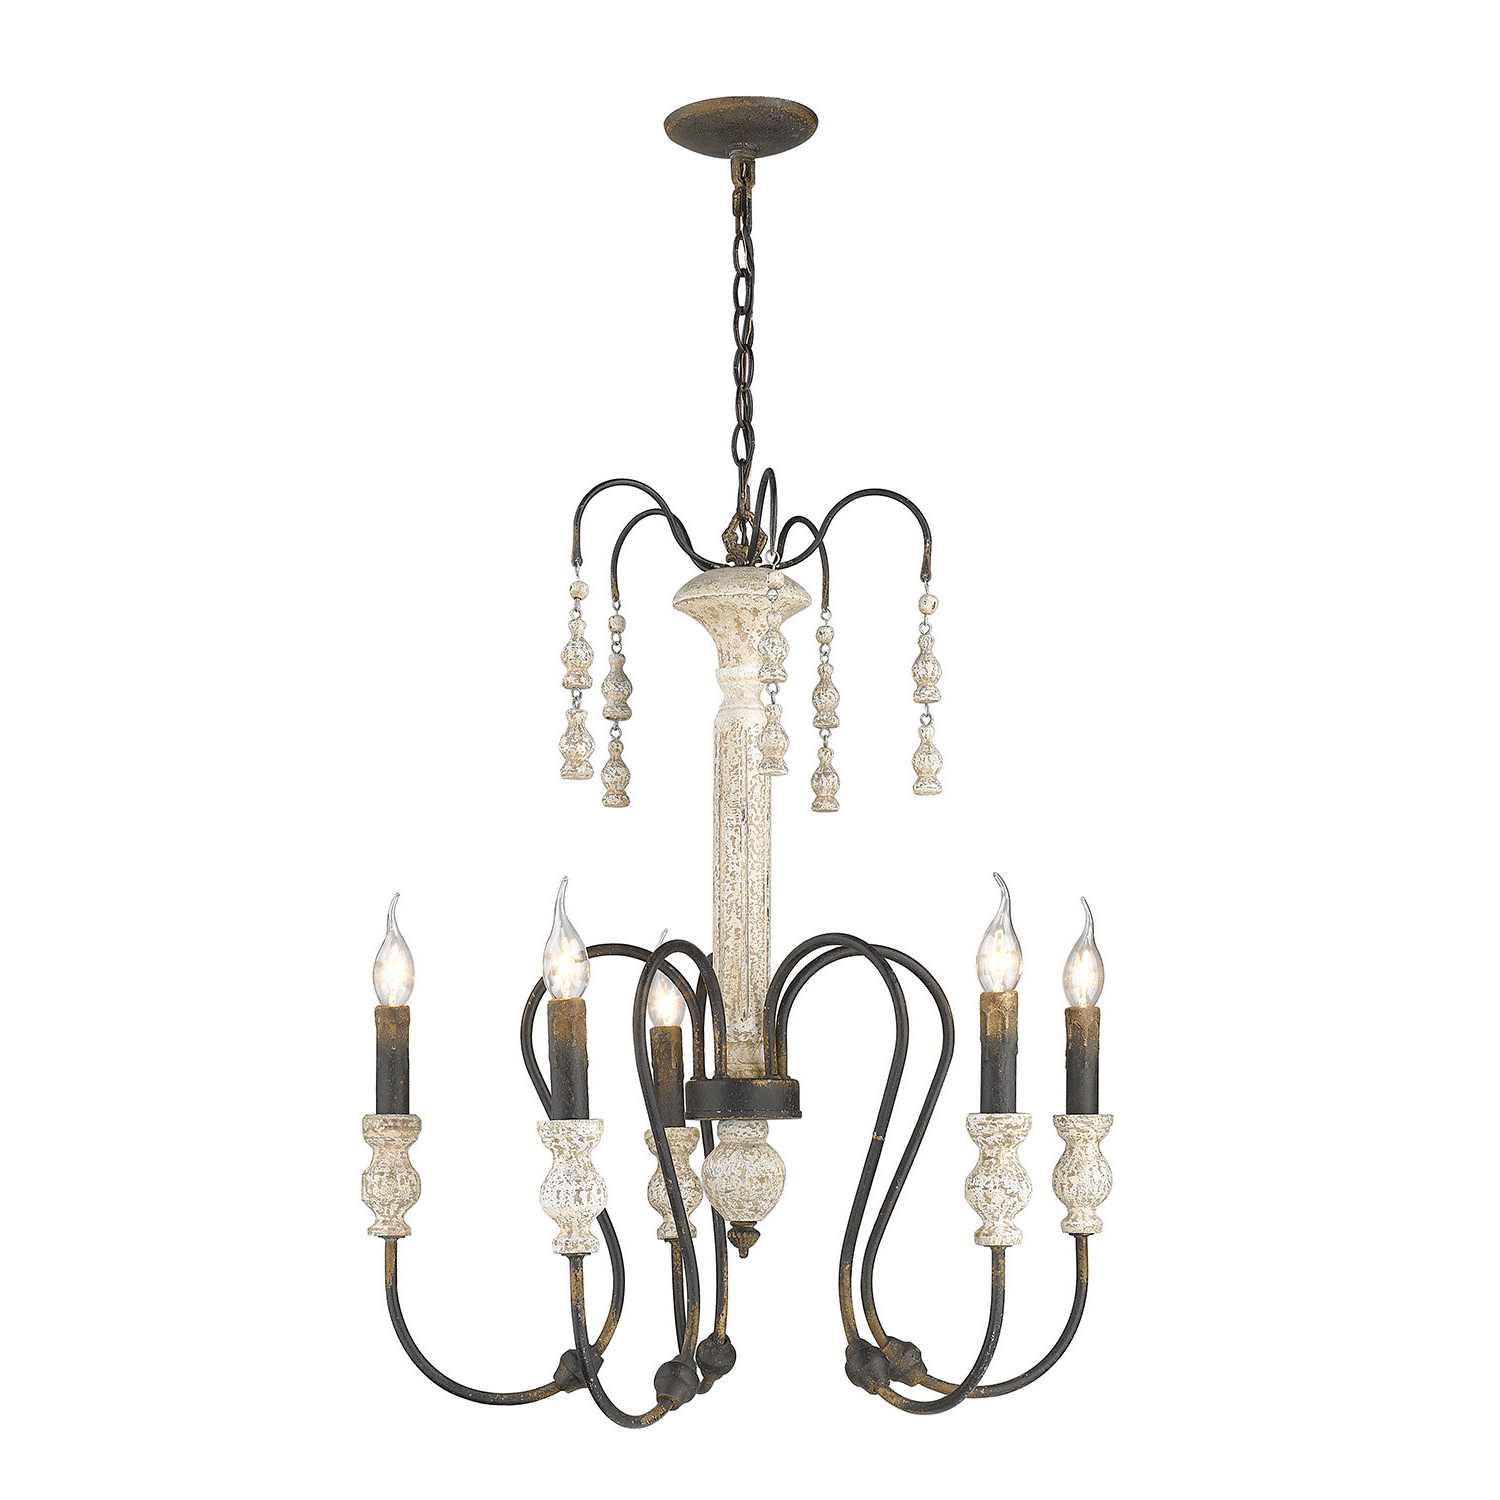 Sherrie 5 Light Candle Style Chandelier Intended For Recent Corneau 5 Light Chandeliers (View 2 of 20)